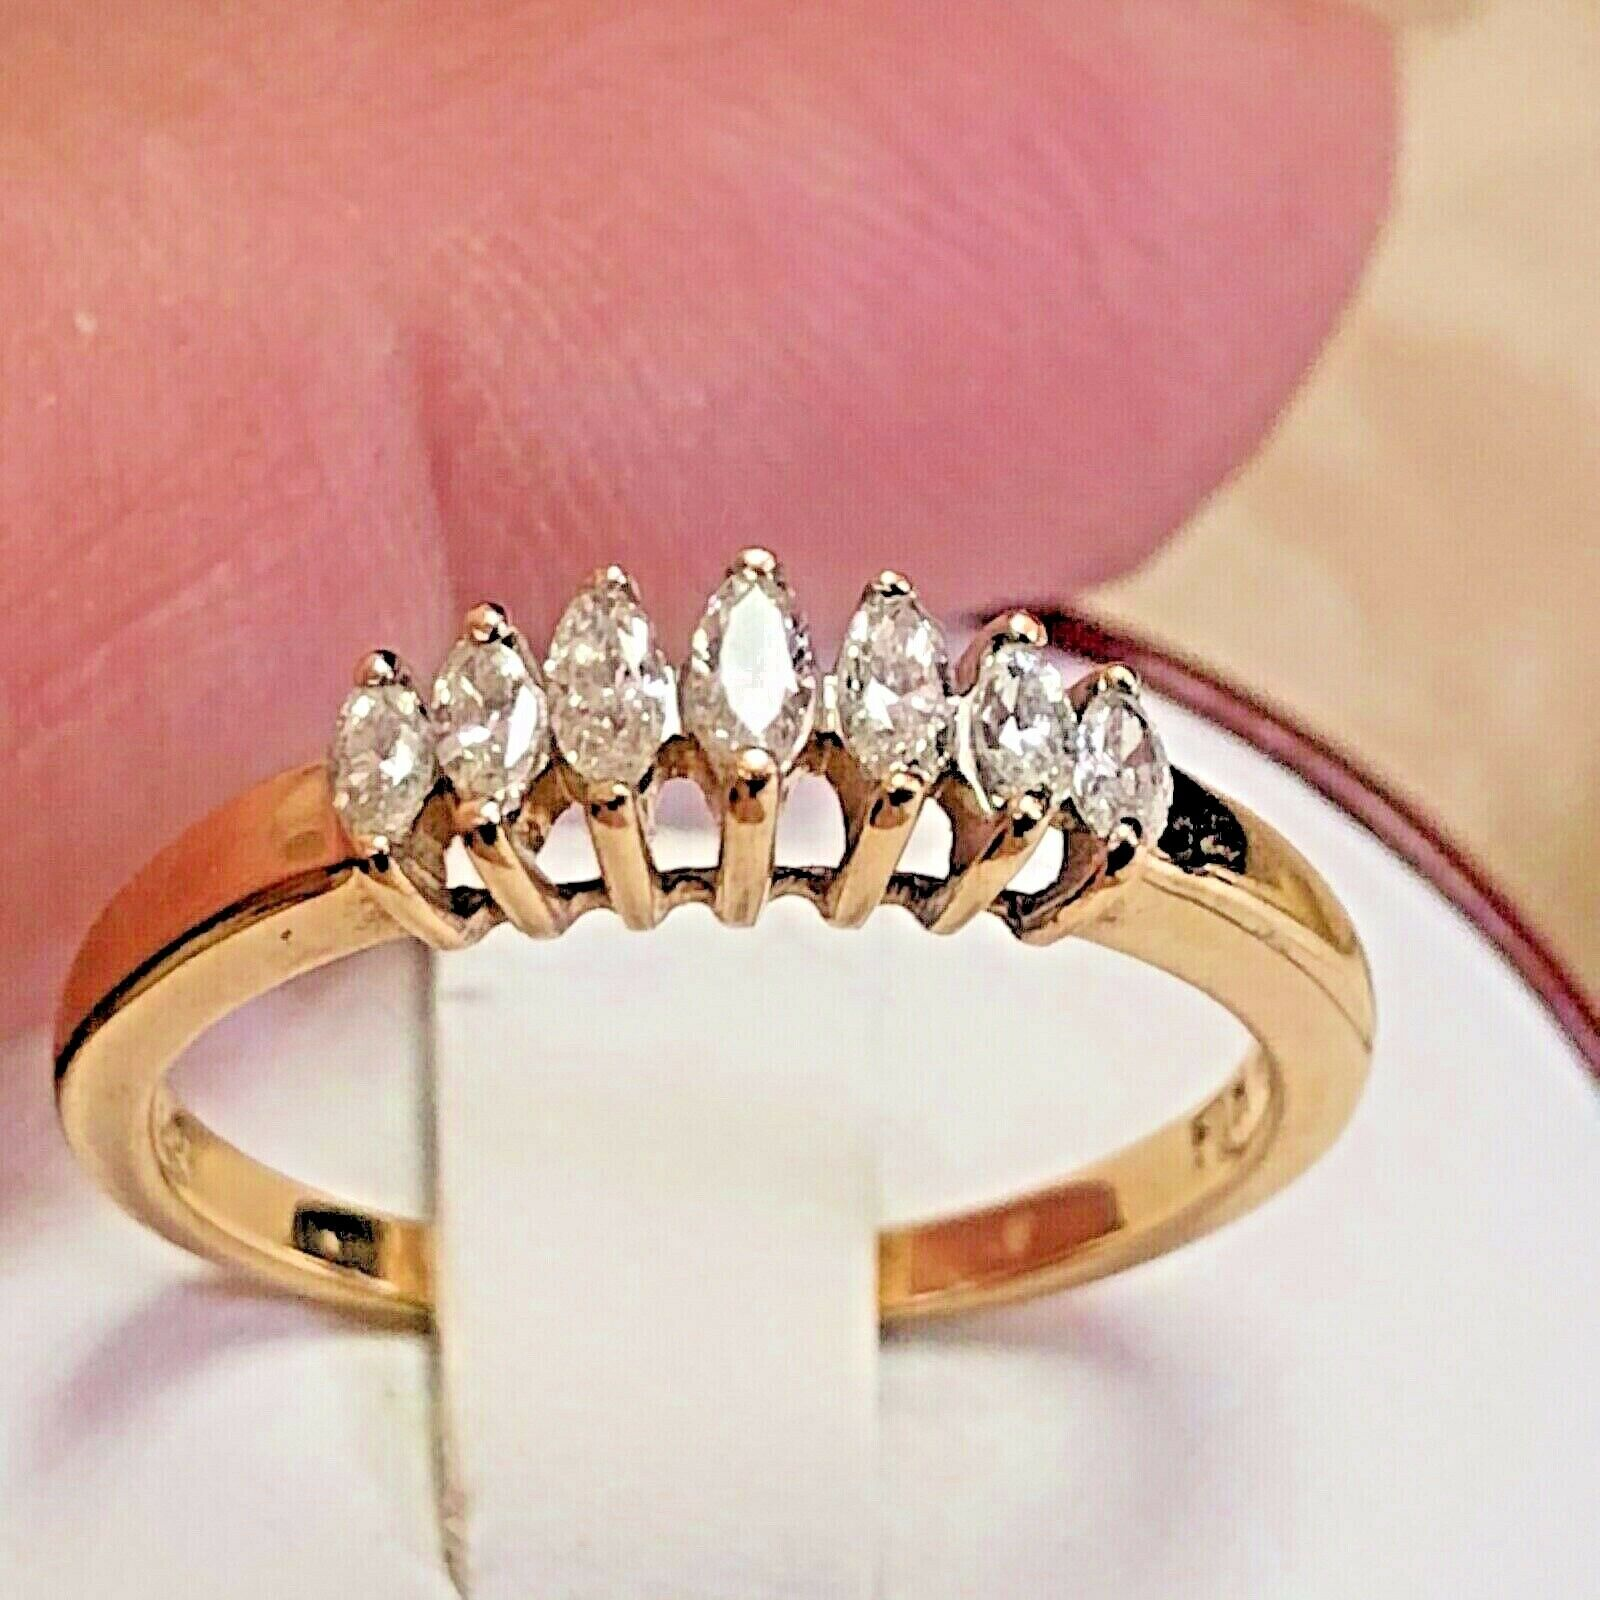 14k Gold 1 3 Carat Diamond Ring Marquise Size 7 Band 14kt Fth Raw Stone Jewelry Black Diamond Ring 3 Carat Diamond Ring